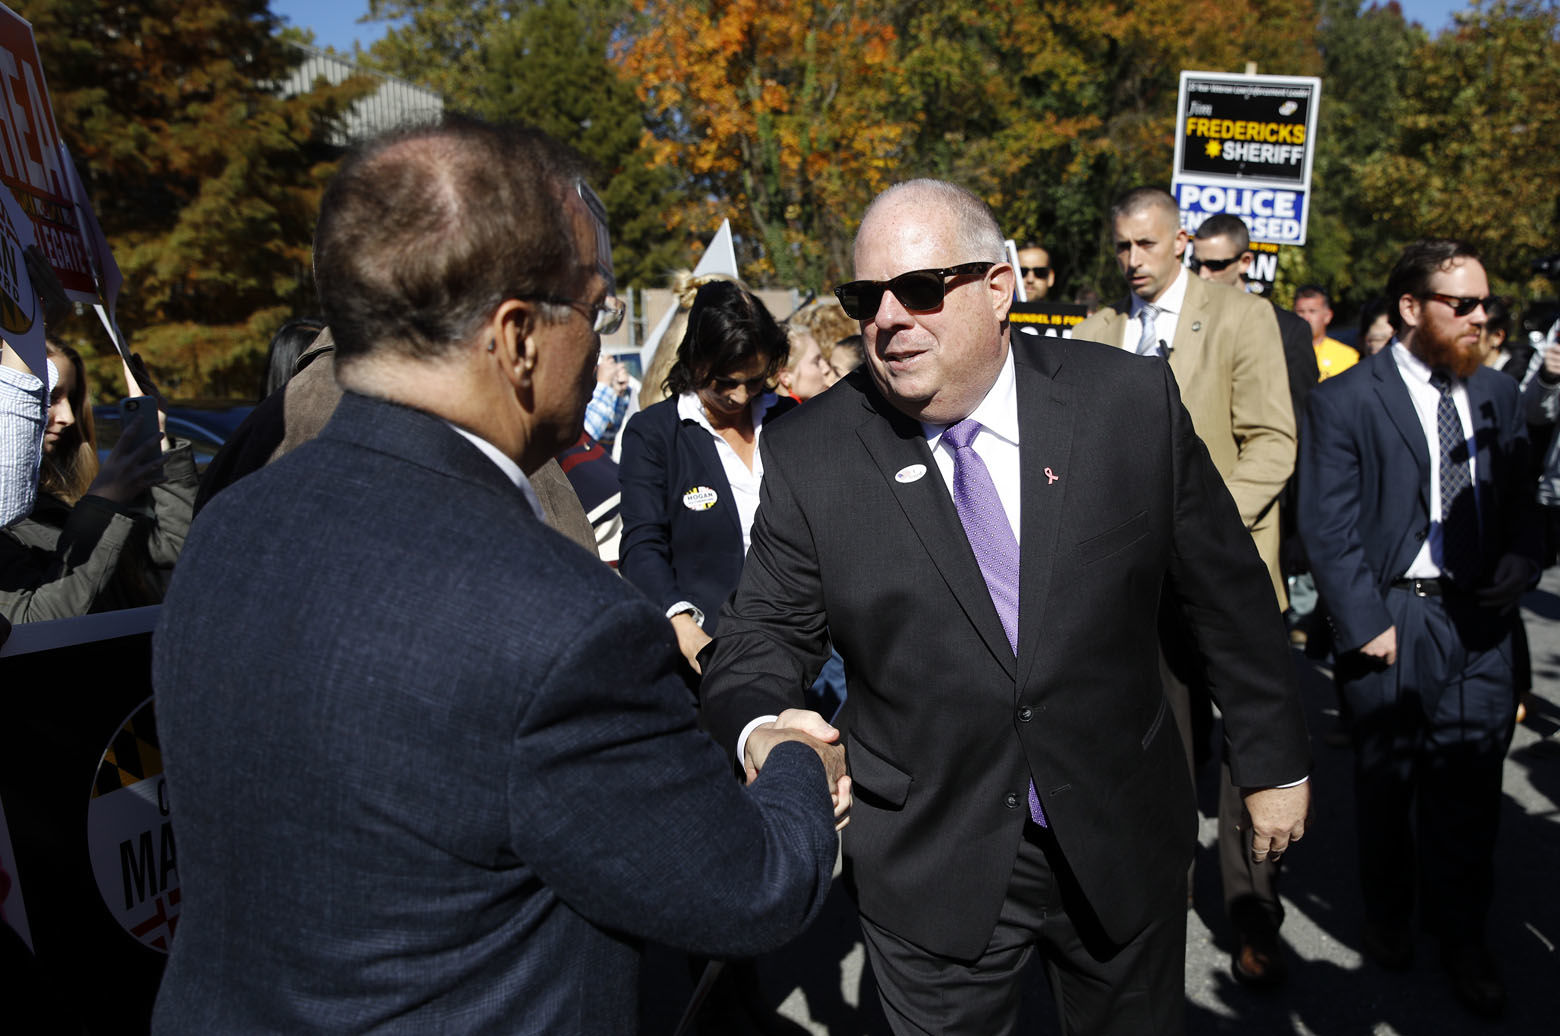 Maryland Gov. Larry Hogan greets supporters outside a polling place after voting early, Tuesday, Oct. 30, 2018, in Annapolis, Md. Hogan is running for re-election against Democratic candidate Ben Jealous. (AP Photo/Patrick Semansky)